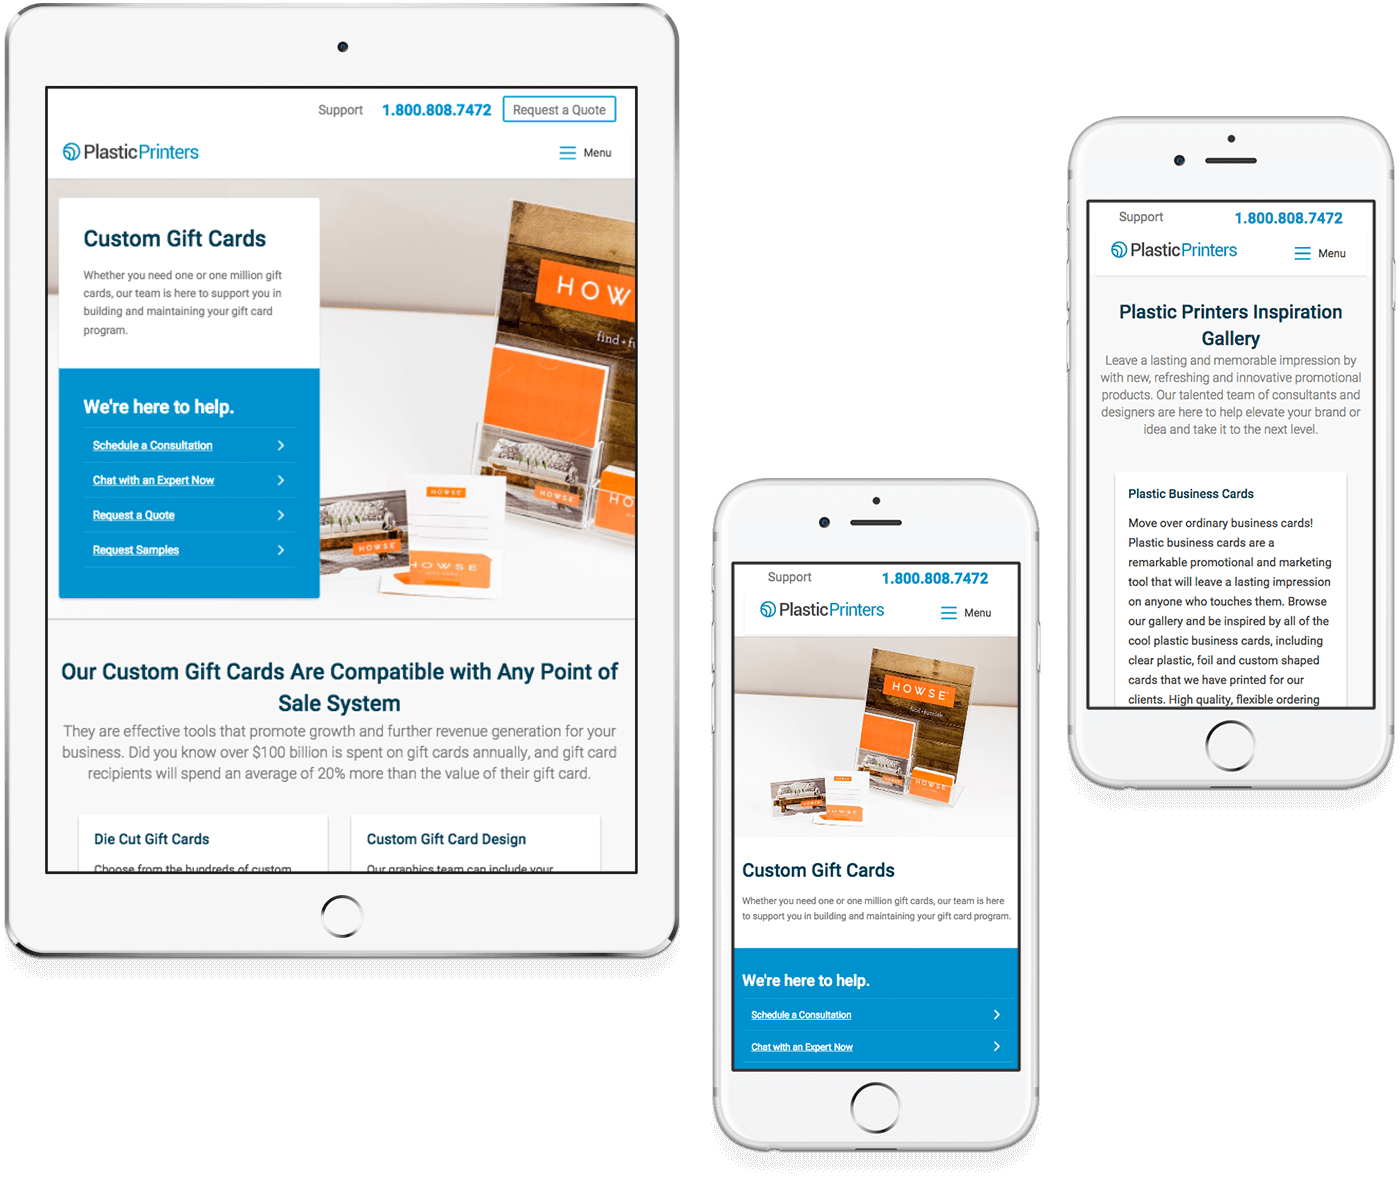 Plastic Printers' responsive redesigned website on a tablet and two mobile phones